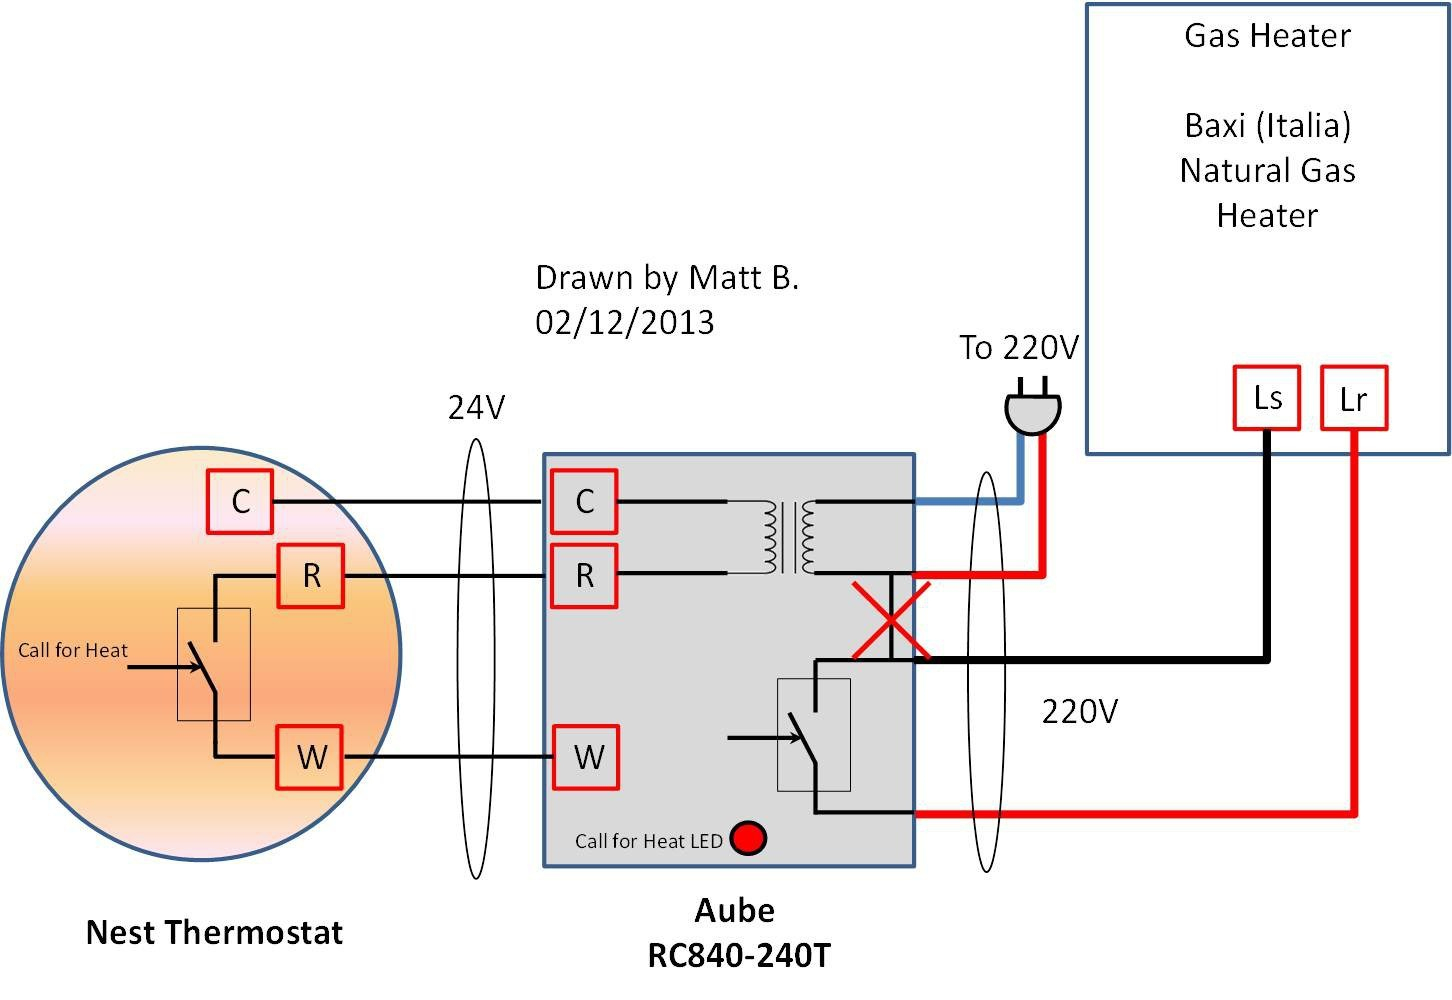 Wiring Diagram For Nest Thermostat Uk | Wiring Diagram - Nest Wiring Diagram Uk